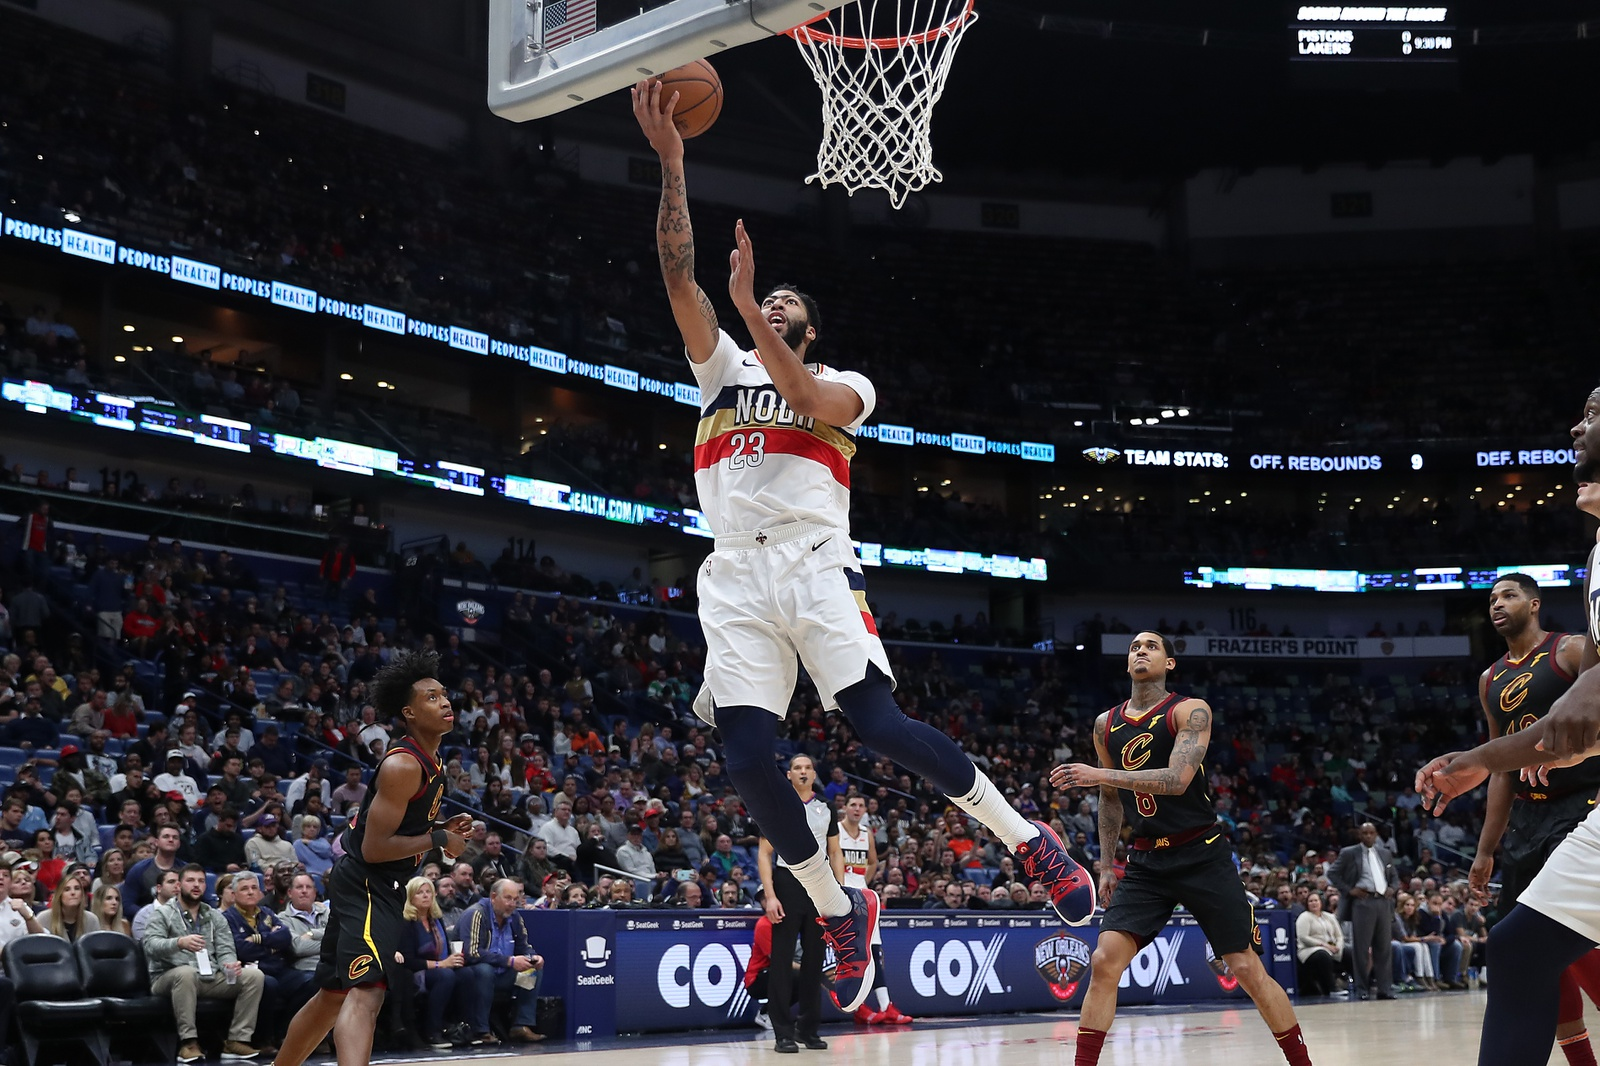 Anthony Davis #23 of the New Orleans Pelicans makes a shot against the Cleveland Cavaliers at Smoothie King Center on January 09, 2019 in New Orleans, Louisiana.